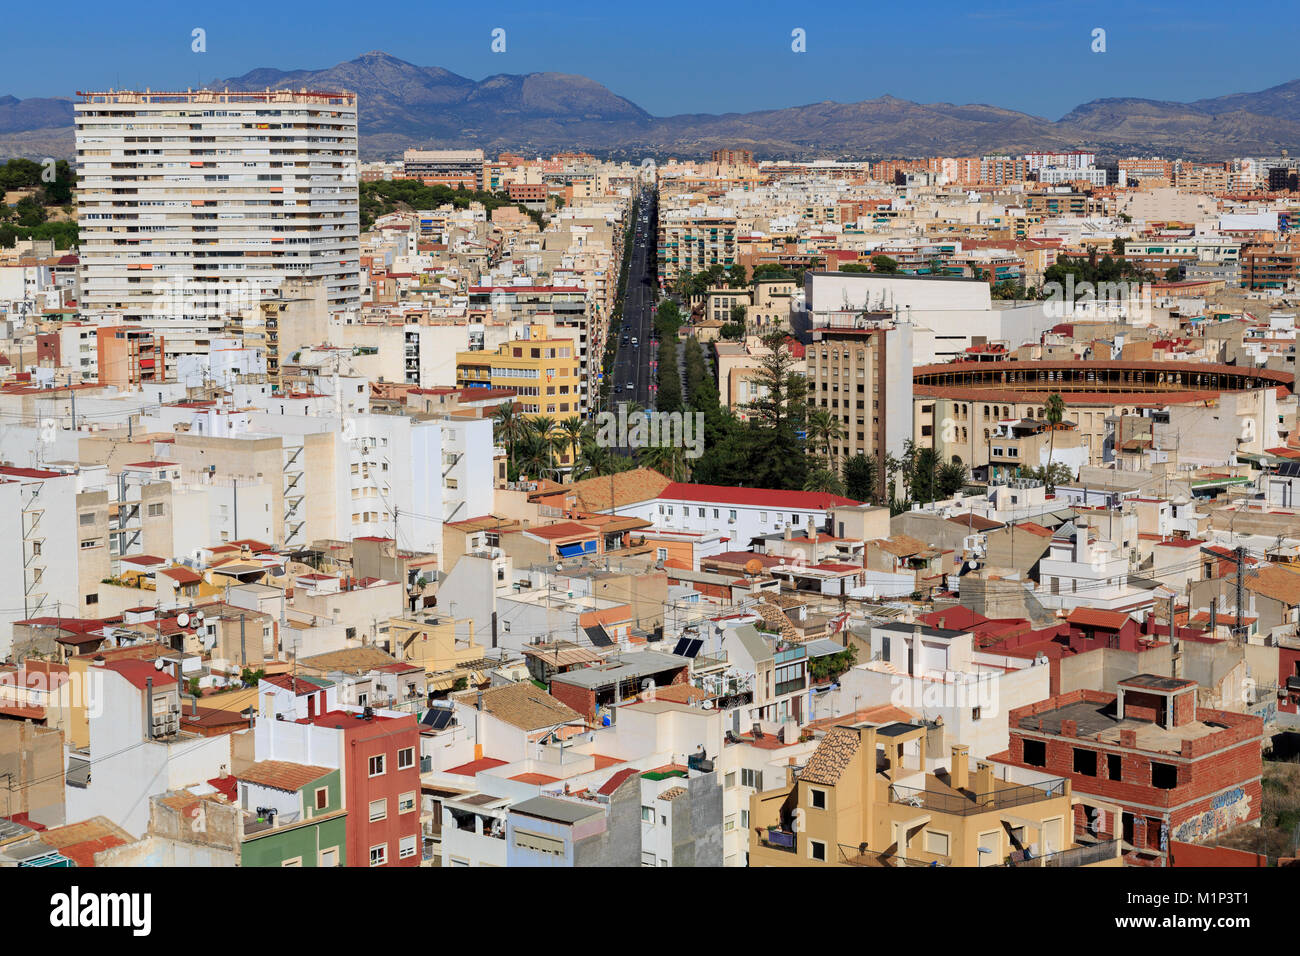 City of Alicante, Spain, Europe - Stock Image